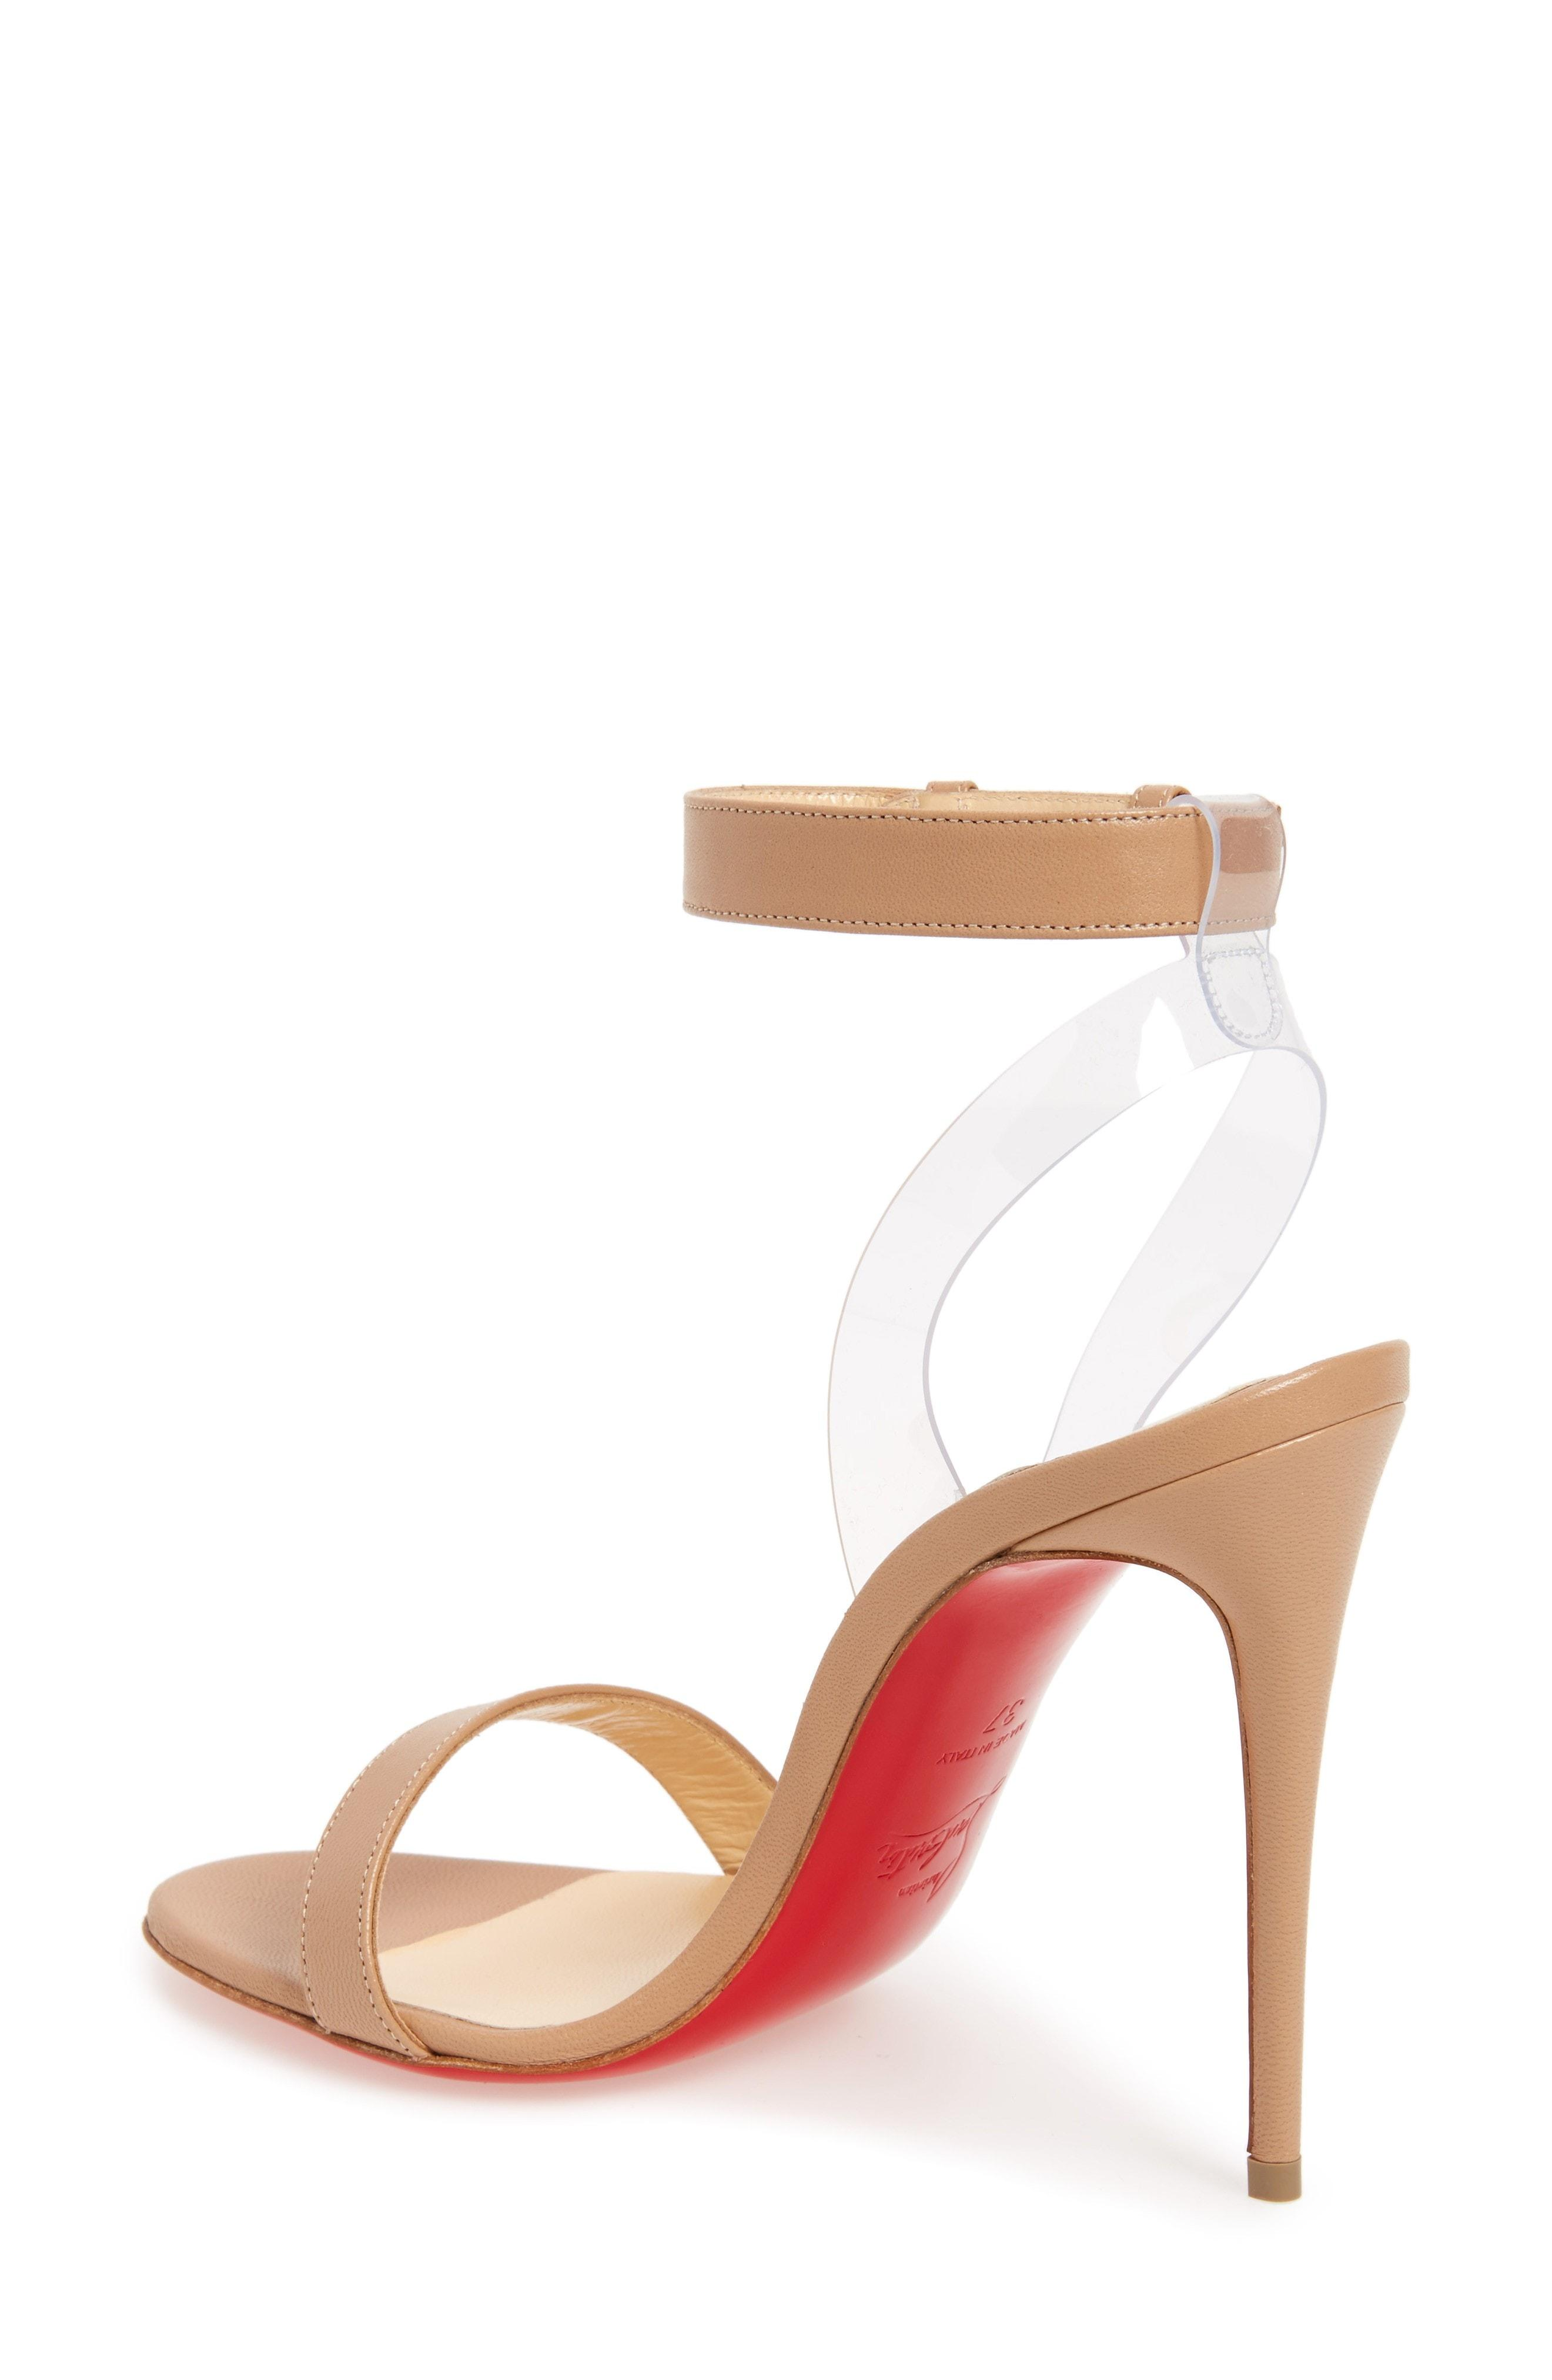 9ecef879639 Christian Louboutin Jonatina Illusion Ankle-Strap Red Sole Sandals In  Neutral